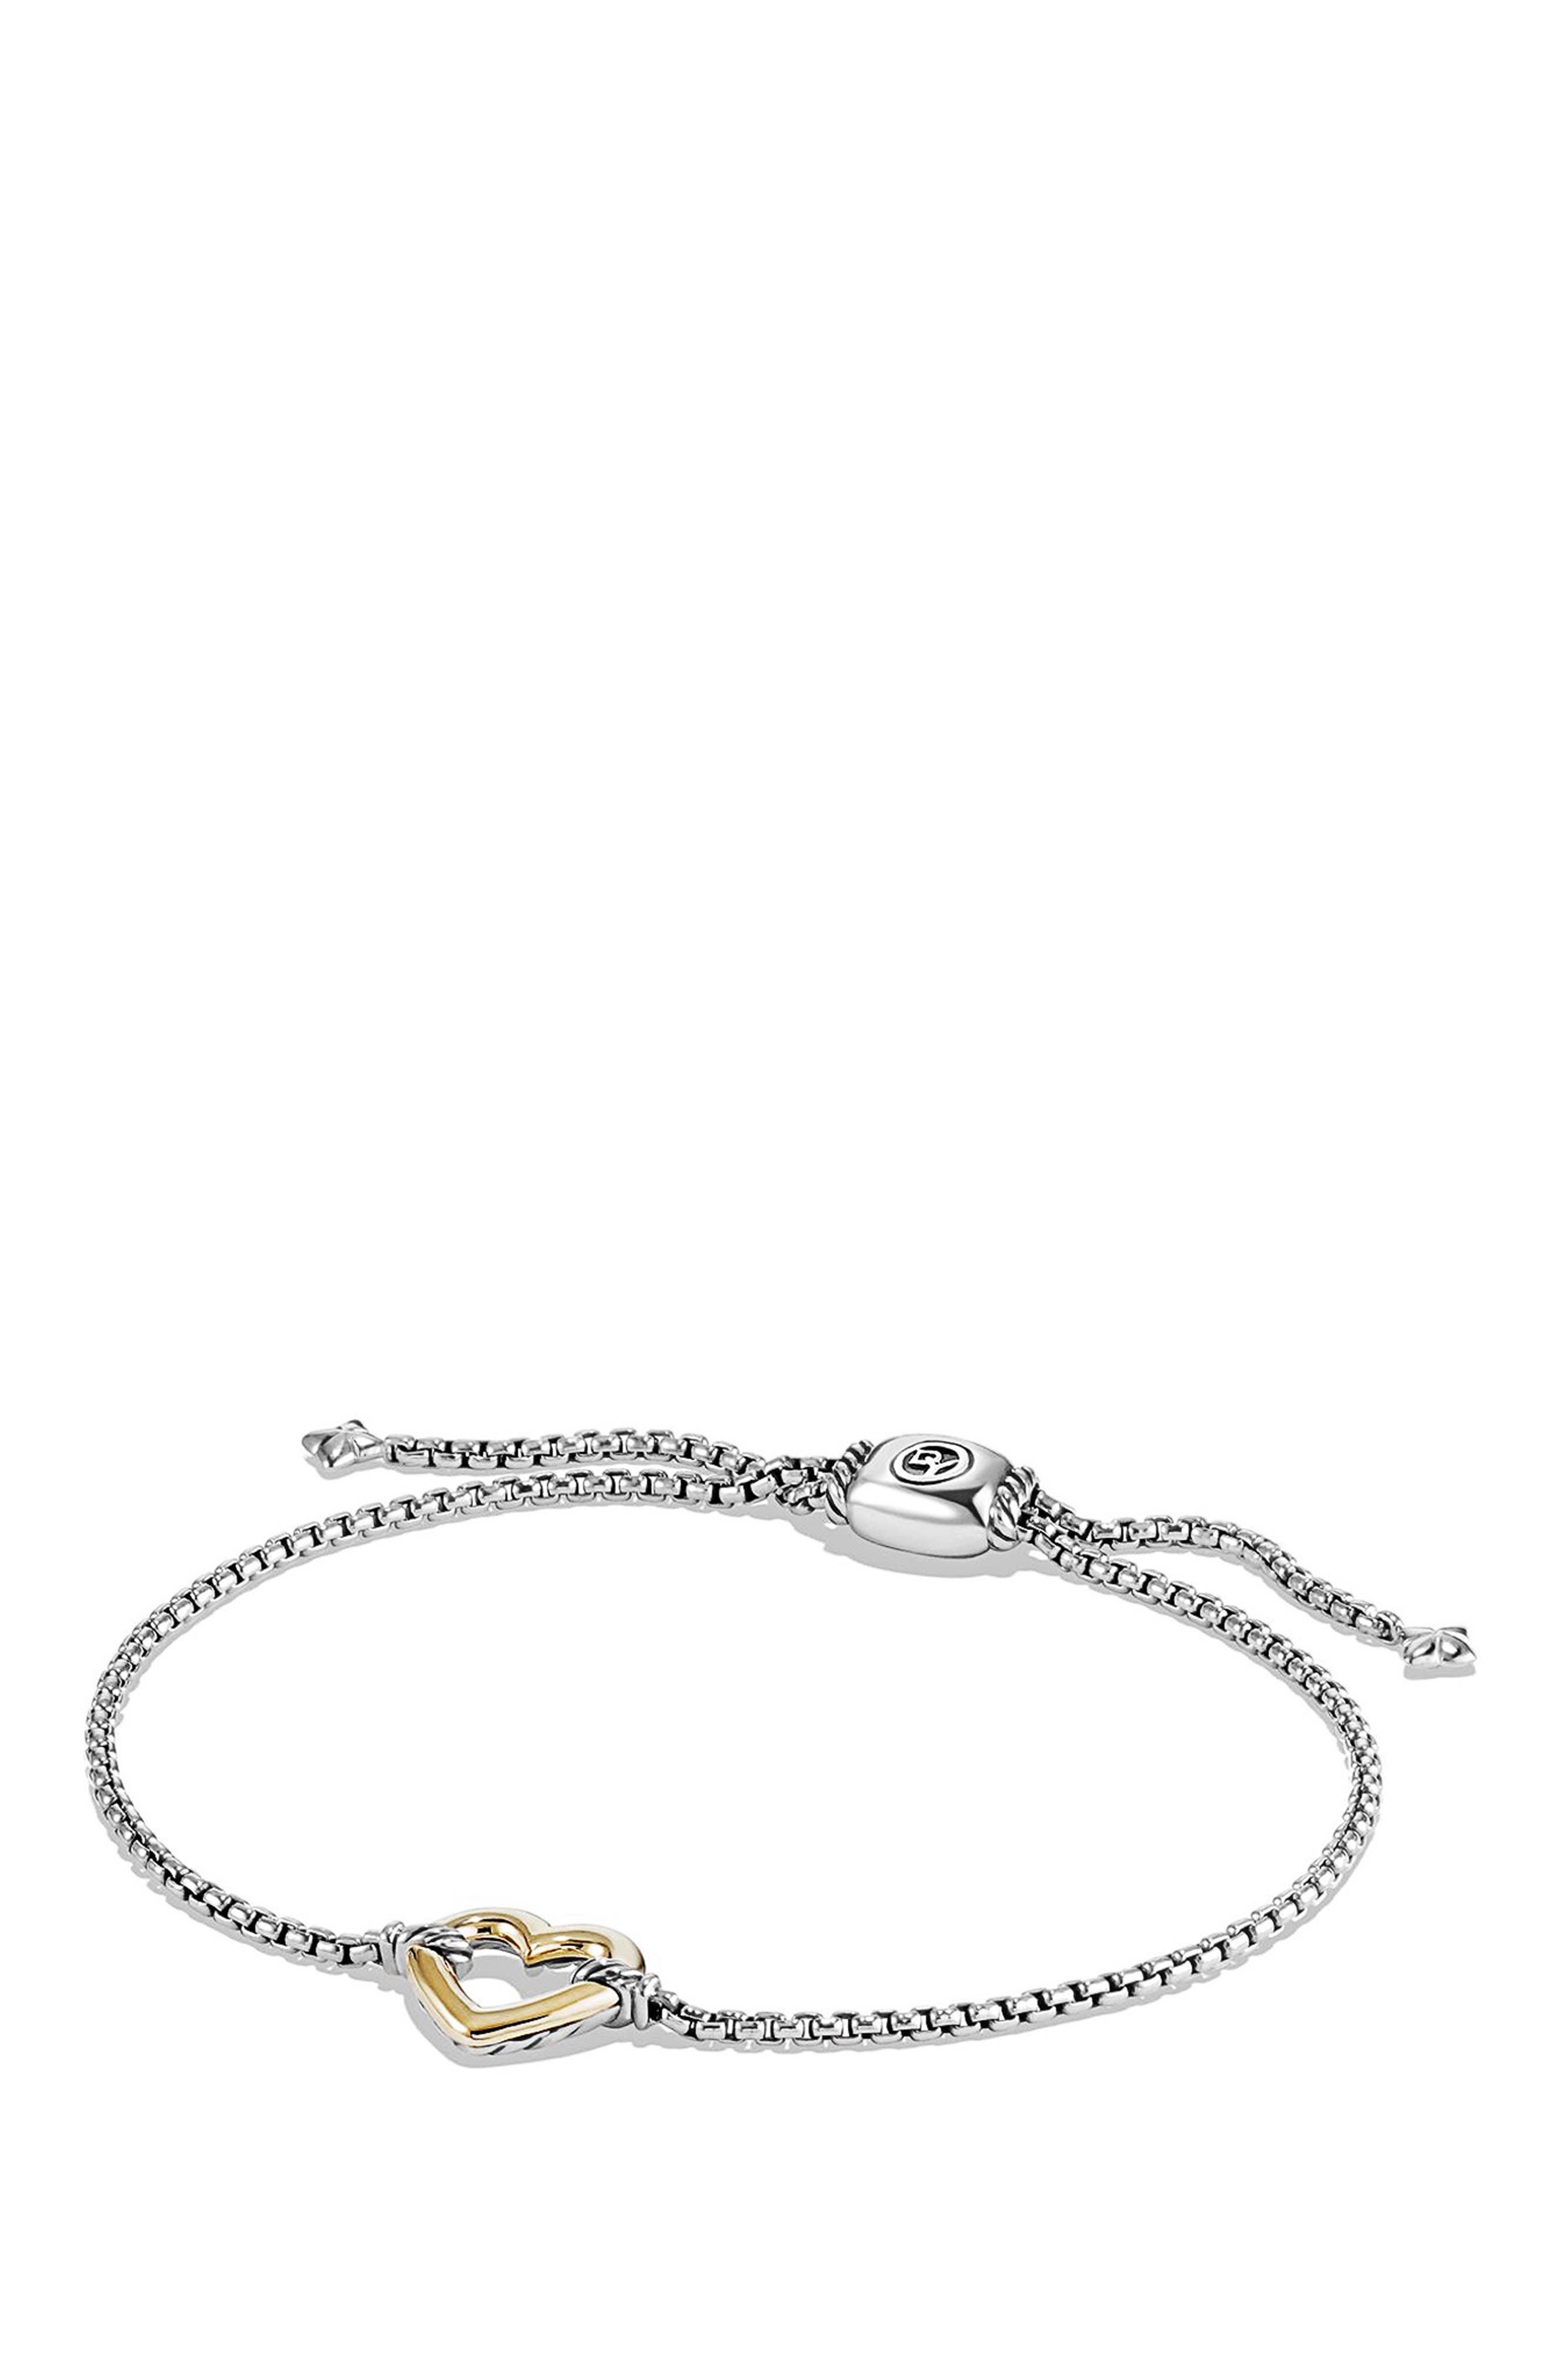 'Cable Collectibles' Heart Station Bracelet with 18K Gold,                         Main,                         color, SILVER/ GOLD